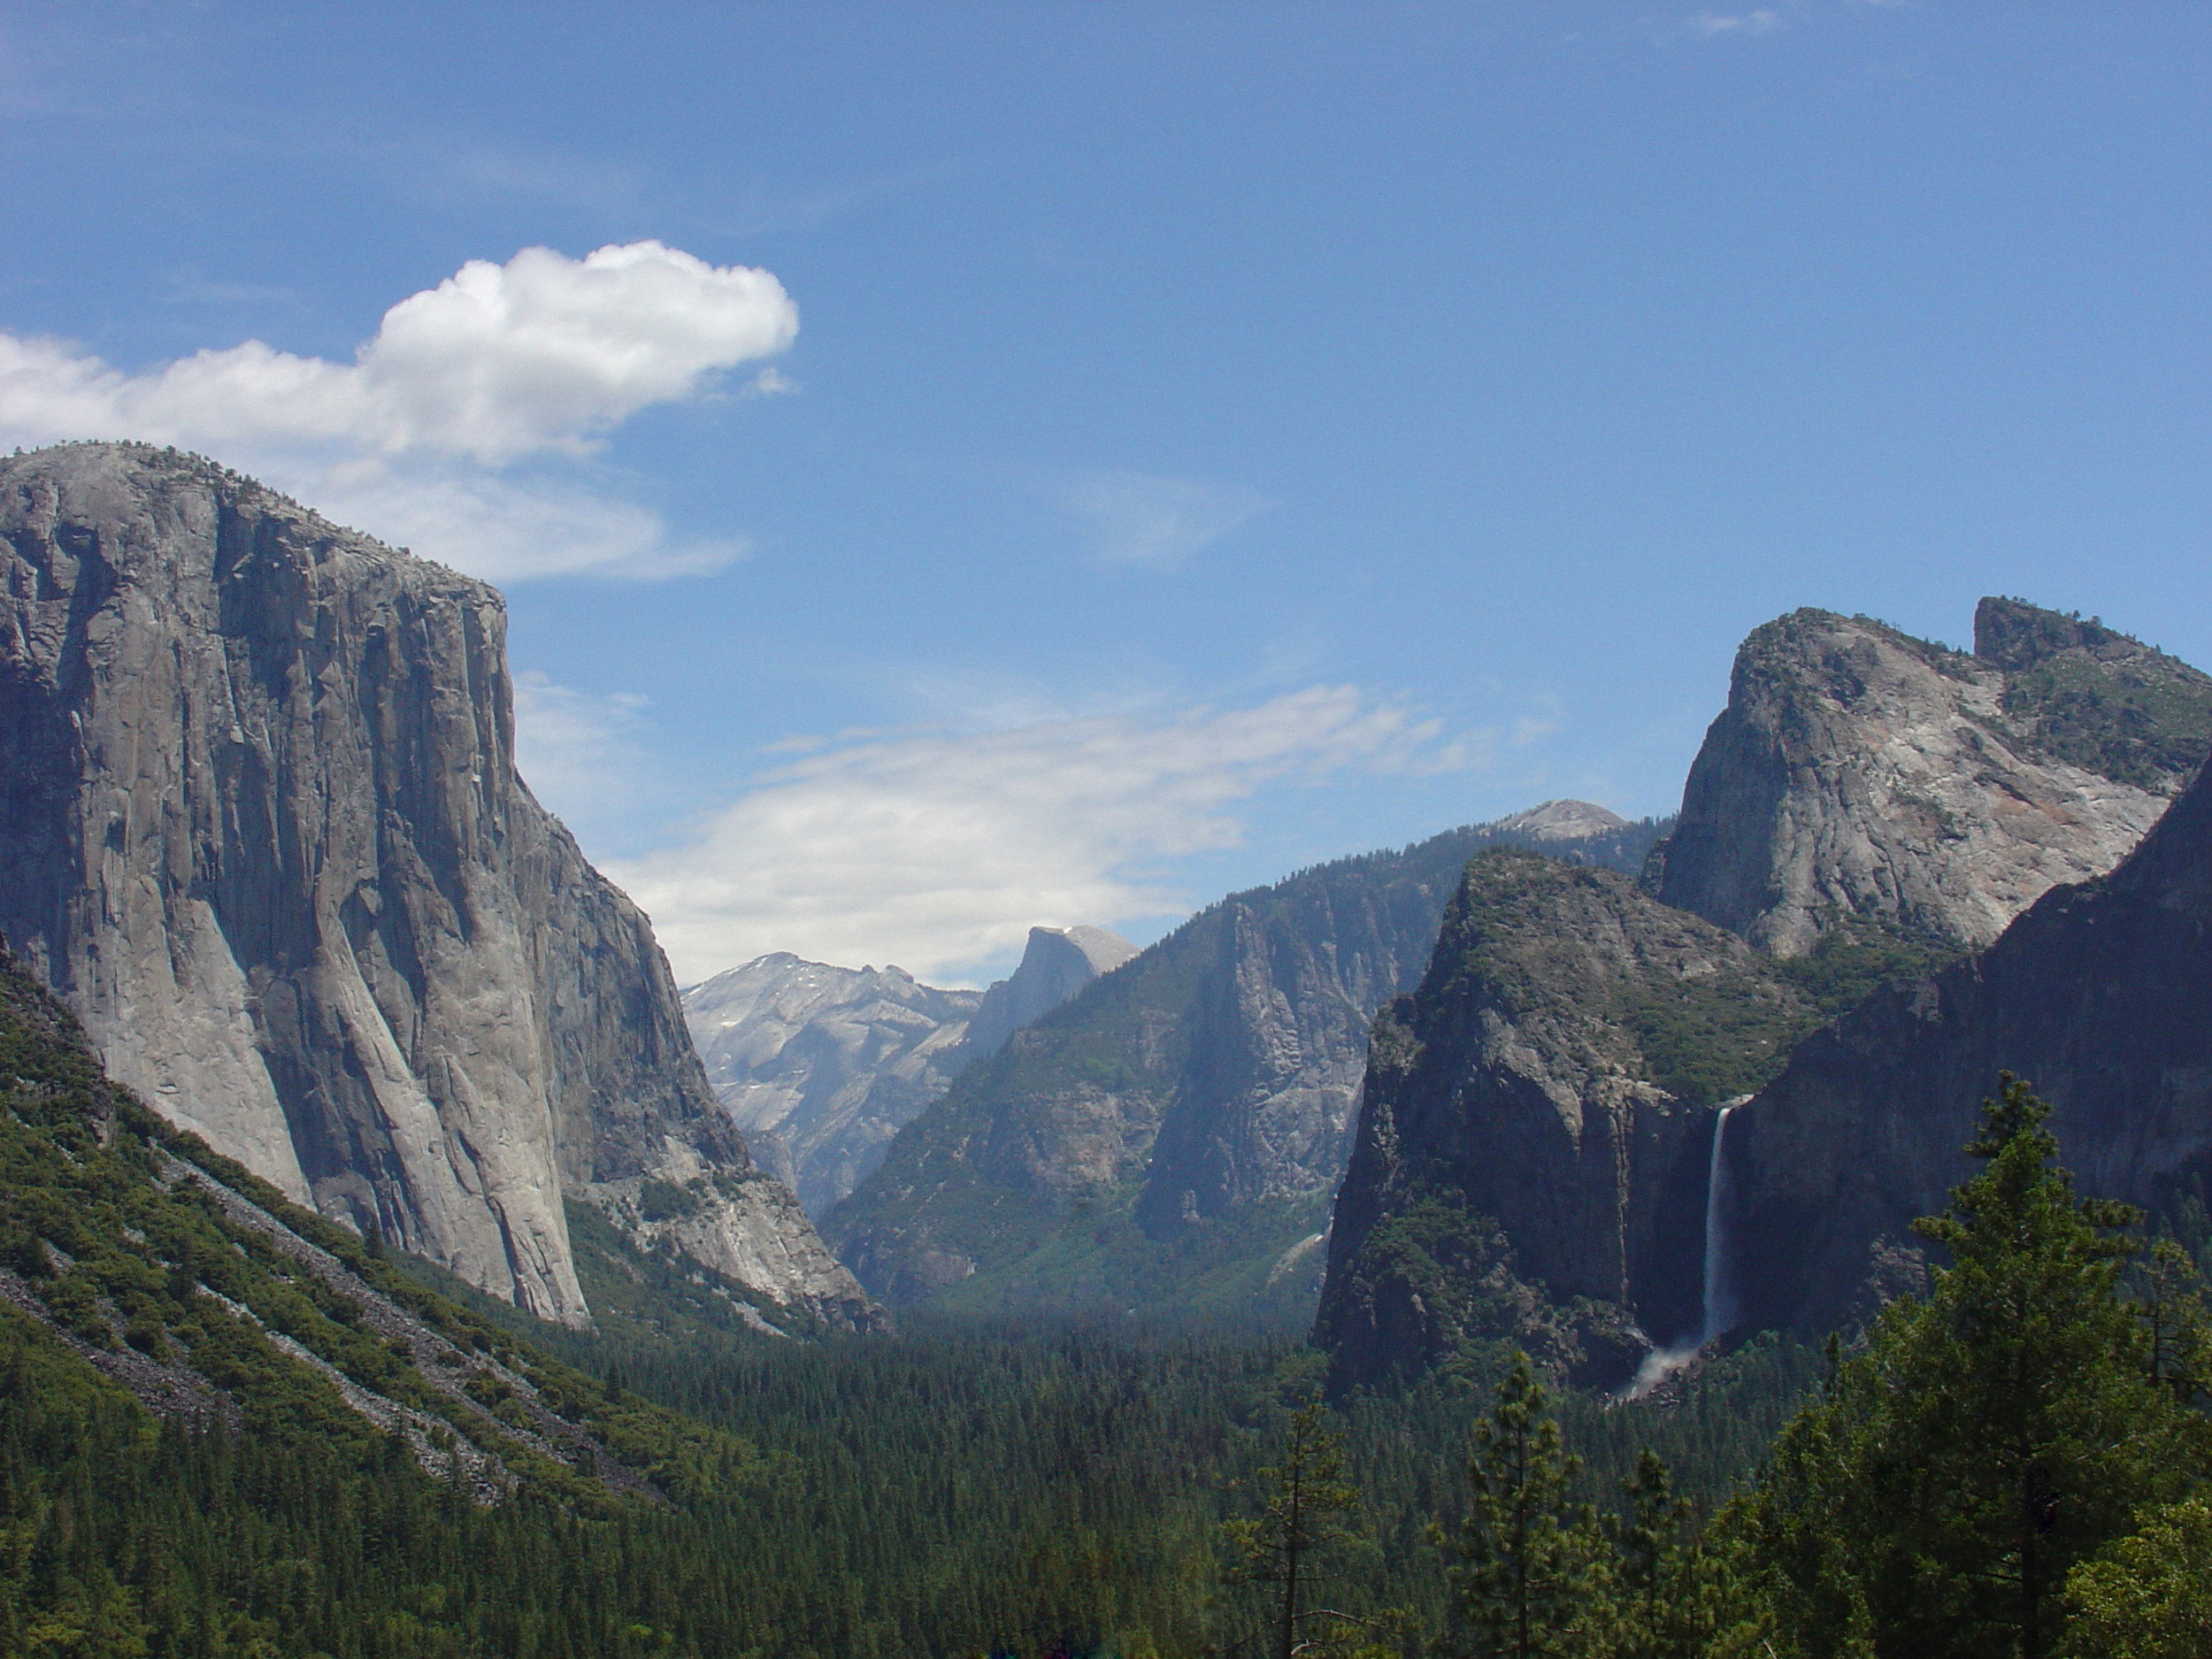 Yosemite Valley - June 2008 - Yosemite Valley from the Tunnel view on CA41. This is how it looked before the 5-year drought.